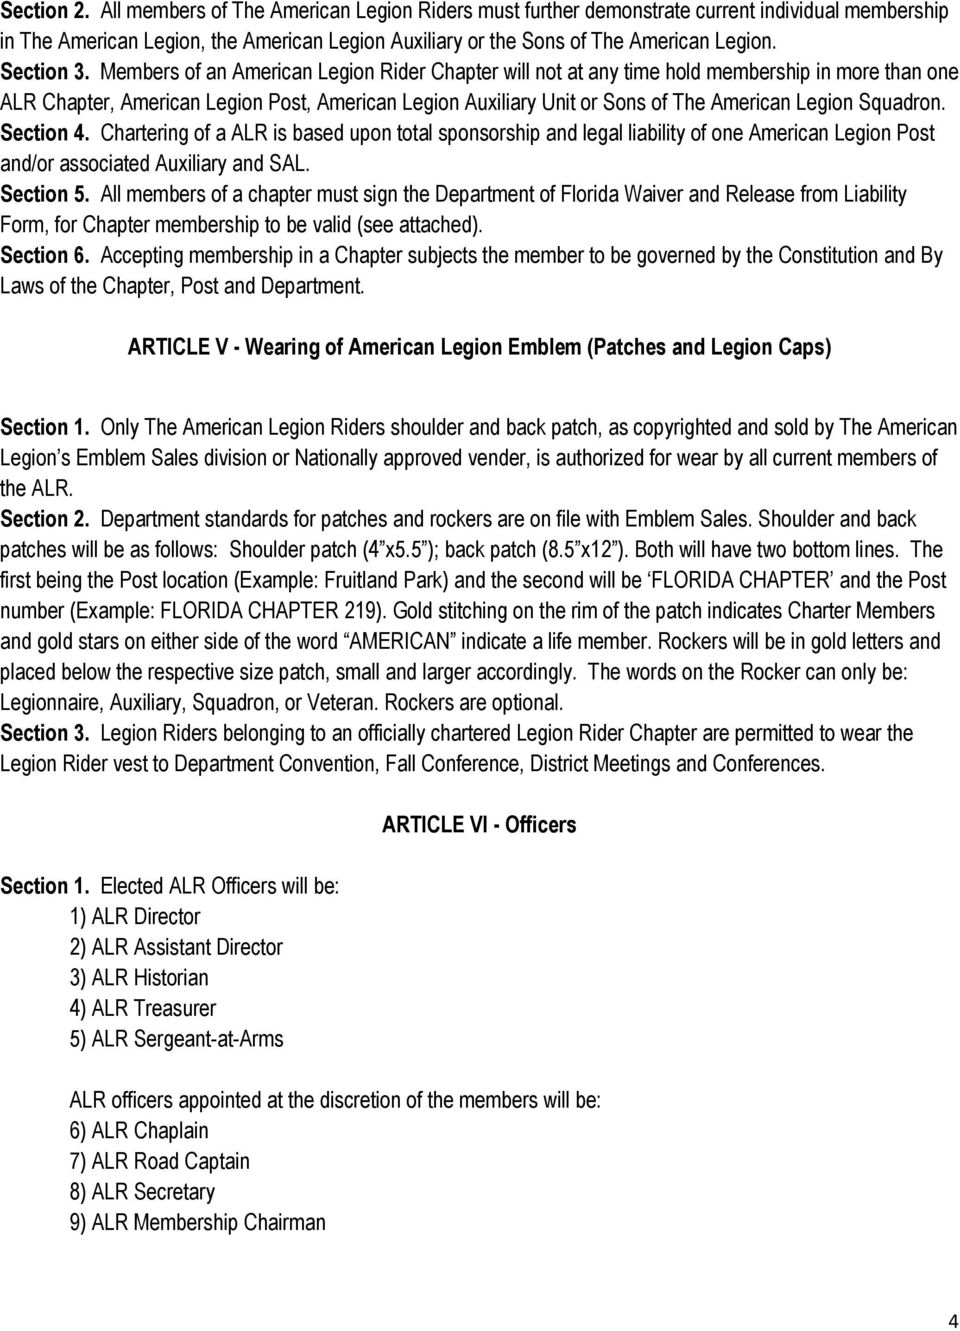 Members of an American Legion Rider Chapter will not at any time hold membership in more than one ALR Chapter, American Legion Post, American Legion Auxiliary Unit or Sons of The American Legion